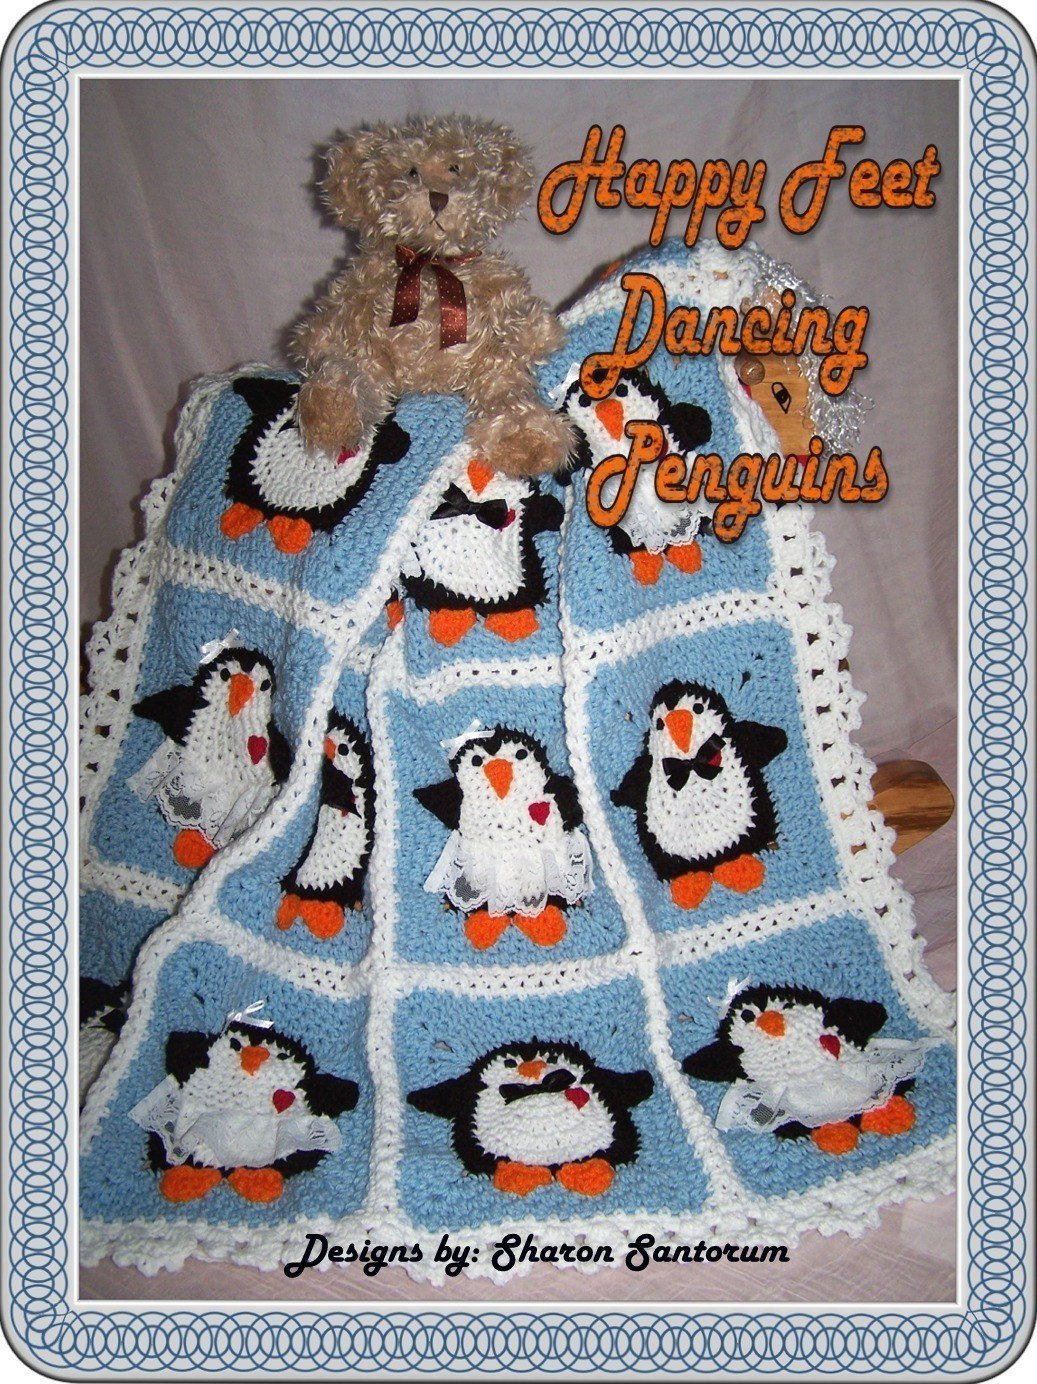 Baby Boy Crochet Blanket Patterns Beautiful Dancing Penguins Crochet Baby Afghan or Blanket Pattern Pdf Of Baby Boy Crochet Blanket Patterns Lovely My Crochet Part 395